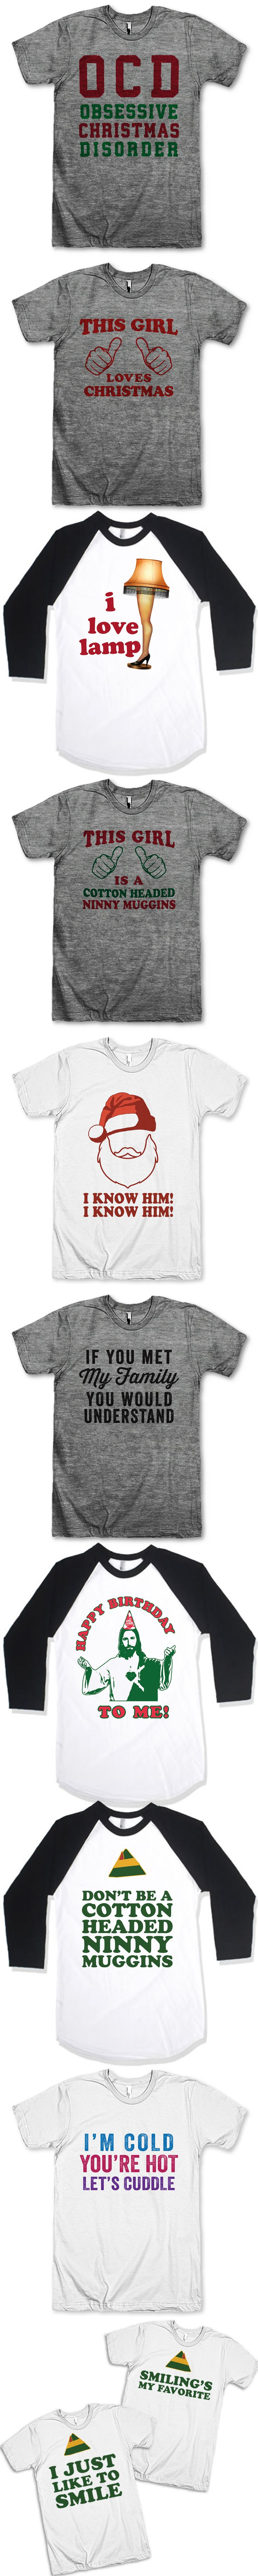 + 11 Christmas T-Shirts You Need Right Now + Our Chistmas Shirts are perfect for giving yourself a present, and even more perfect to share with your BFF! We've got TONS of matching shirts, and lots of funny and sarcastic tees for everyone! Check out T Shirts From Your Favorite Movies, or one of our other collections like Couples shirts and Fitspo Tees. We've got Fresh Designs for Funny T Shirts that are guaranteed to make you Laugh Out Loud! :-) Awesome Best Friends Tees!